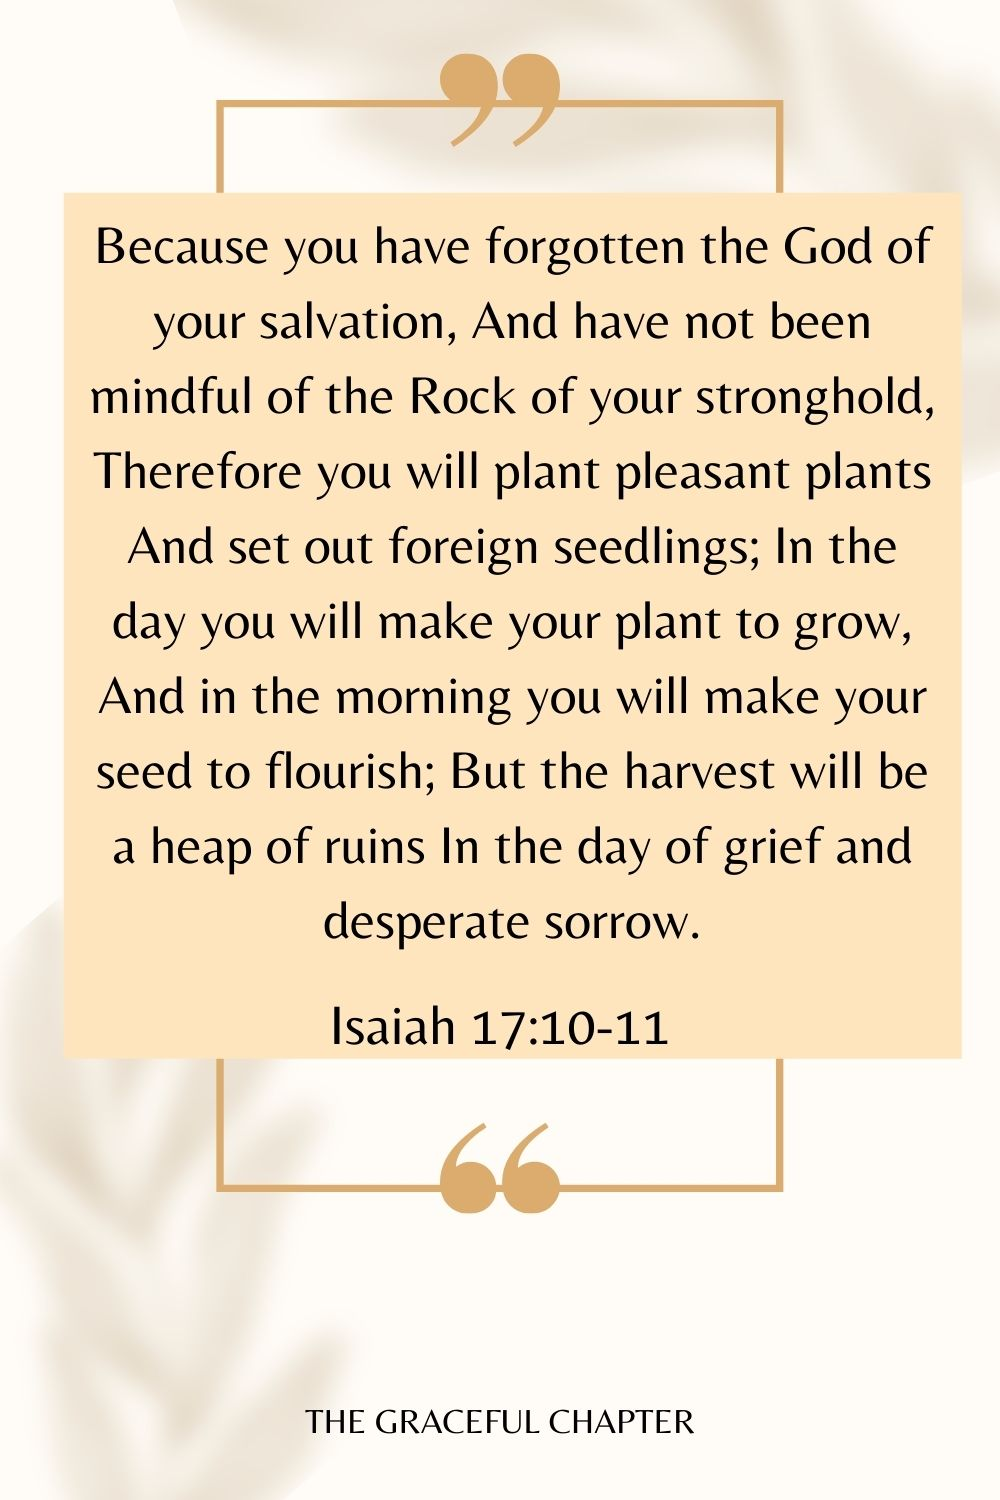 Because you have forgotten the God of your salvation, And have not been mindful of the Rock of your stronghold, Therefore you will plant pleasant plants And set out foreign seedlings; In the day you will make your plant to grow, And in the morning you will make your seed to flourish; But the harvest will be a heap of ruins In the day of grief and desperate sorrow. Isaiah 17:10-11